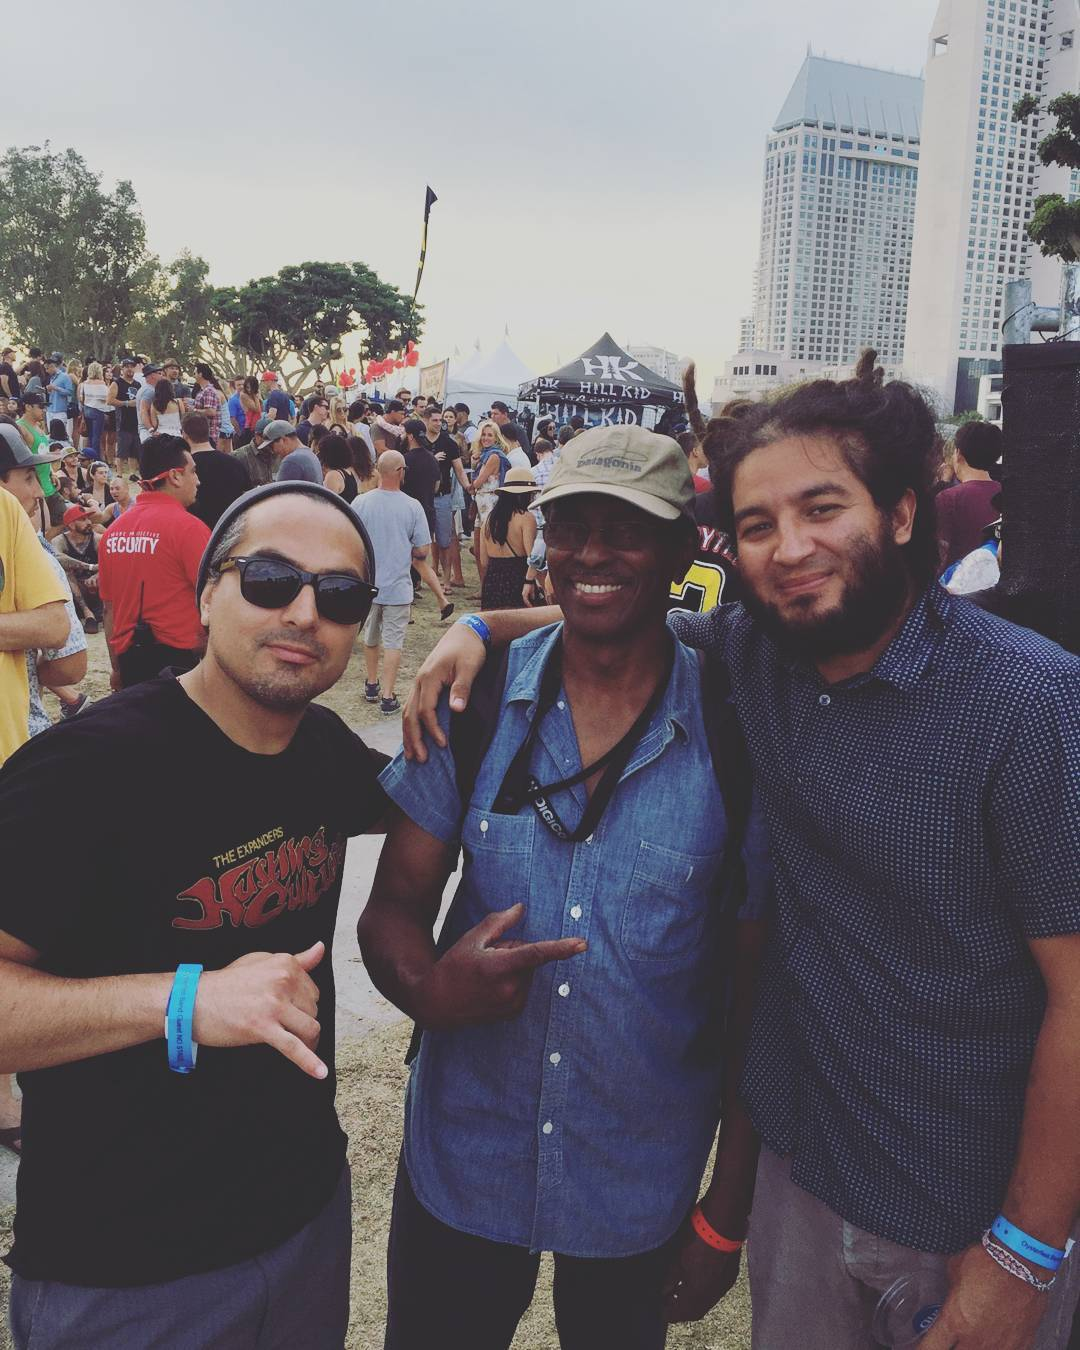 Tony Ray and I taking a picture with Mr. Errol Brown yesterday. He was Bob Marley's sound engineer. Has worked with Cultura Profetica, and now is with Rebelution. #errolbrown #musica #prolificgeneration #oysterfest #oysterfest2016 #sandiego #california